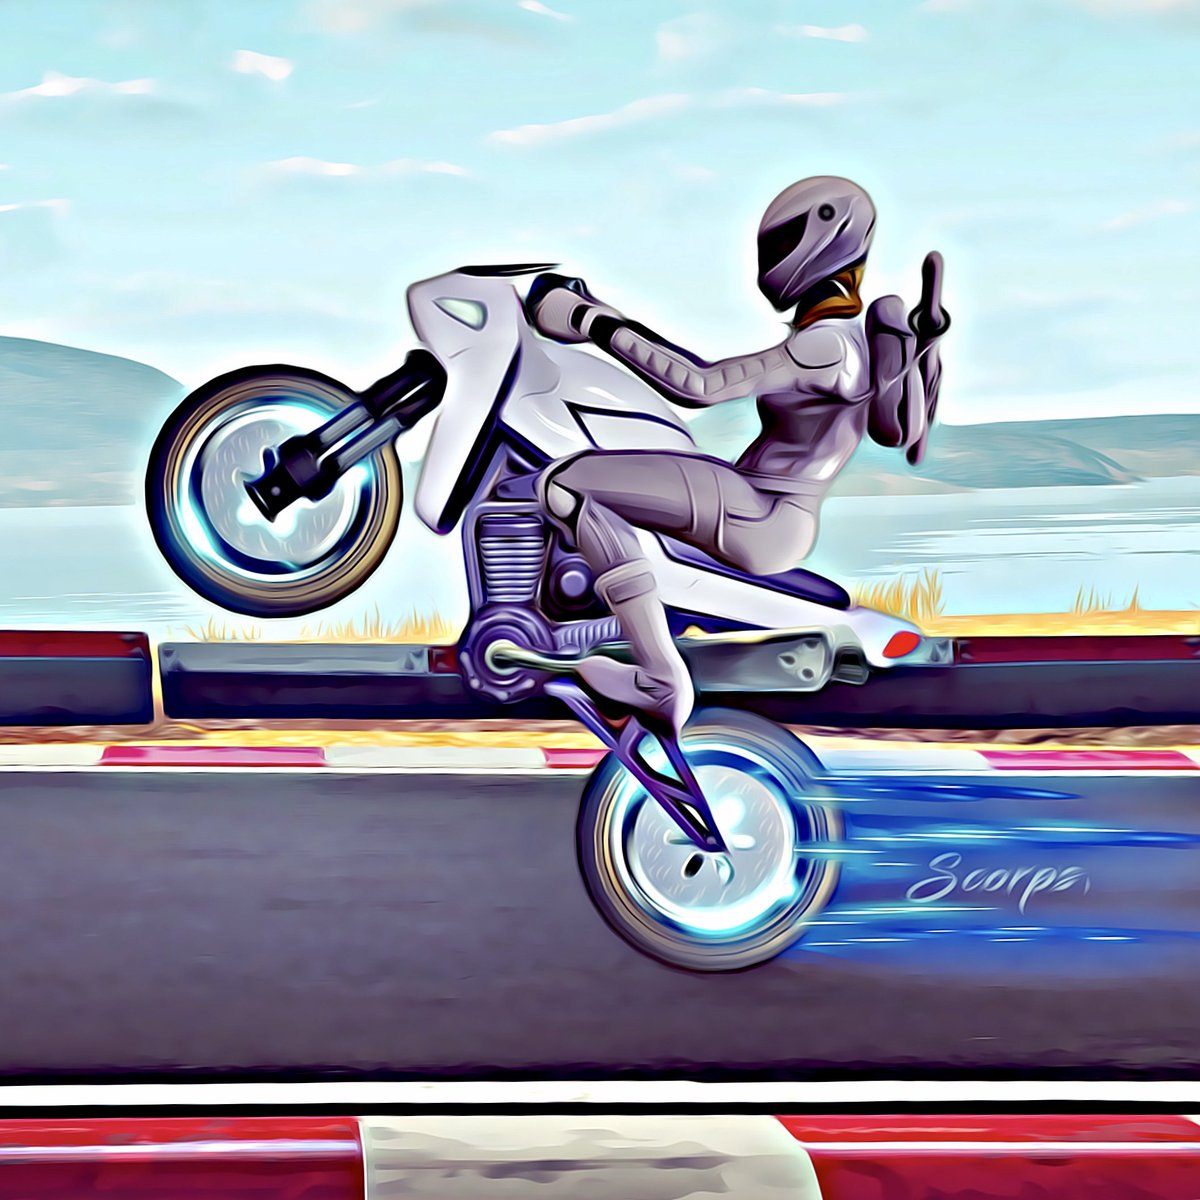 Whiteout is riding her motorcycle ! @FortniteGame @FortniteFR @Fortnite_art_co #Fortnite  #FortniteBR #FortniteBattleRoyale #BattleRoyale #EpicGames #Whiteout #Motorcycle #FanArt #Scorps<br>http://pic.twitter.com/3JsmzmH6SK